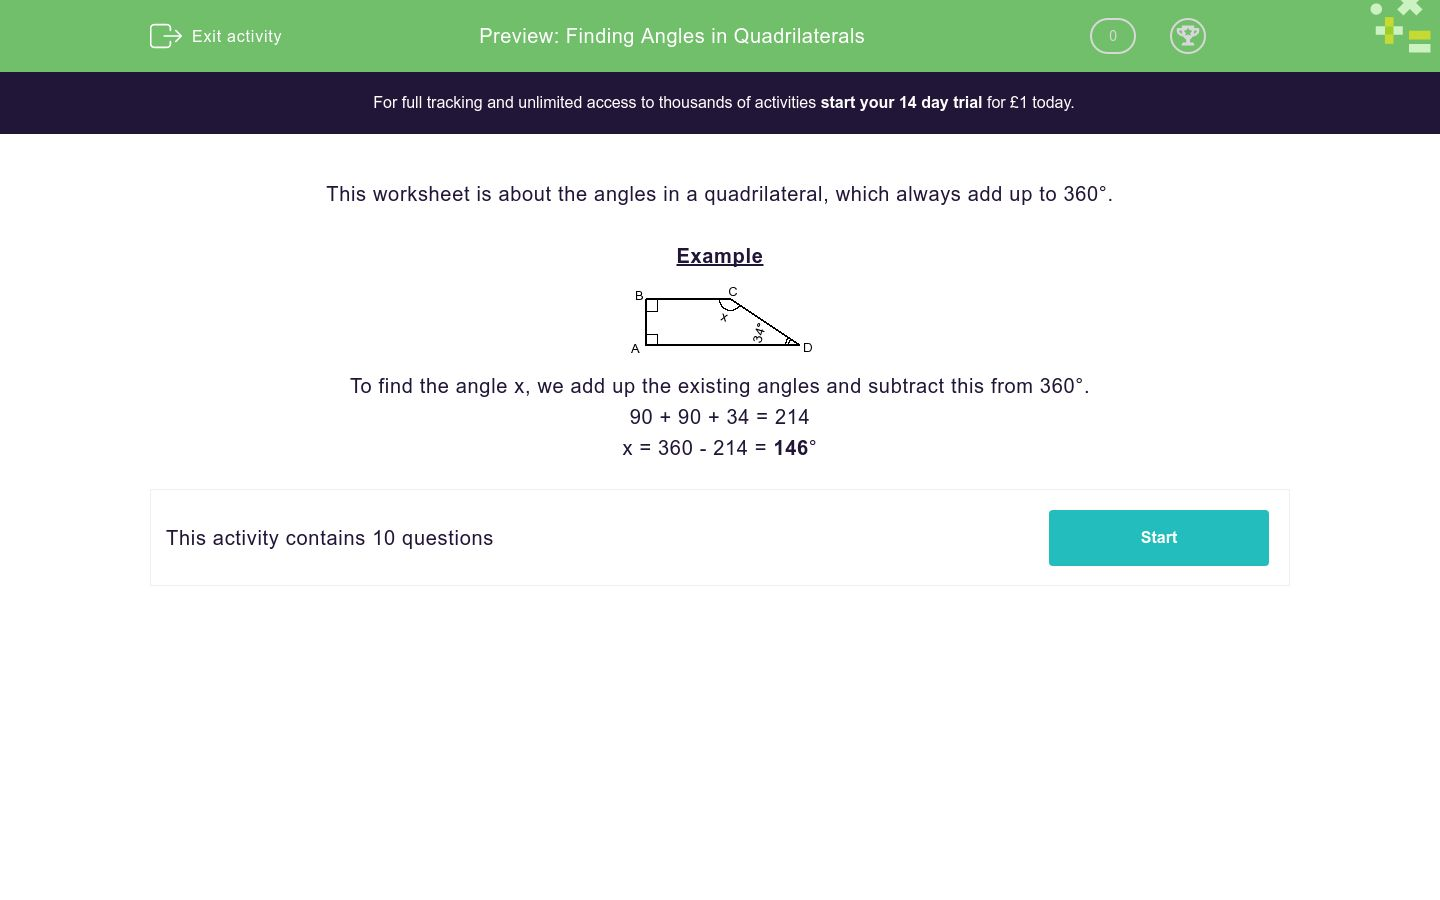 'Finding Angles in Quadrilaterals' worksheet